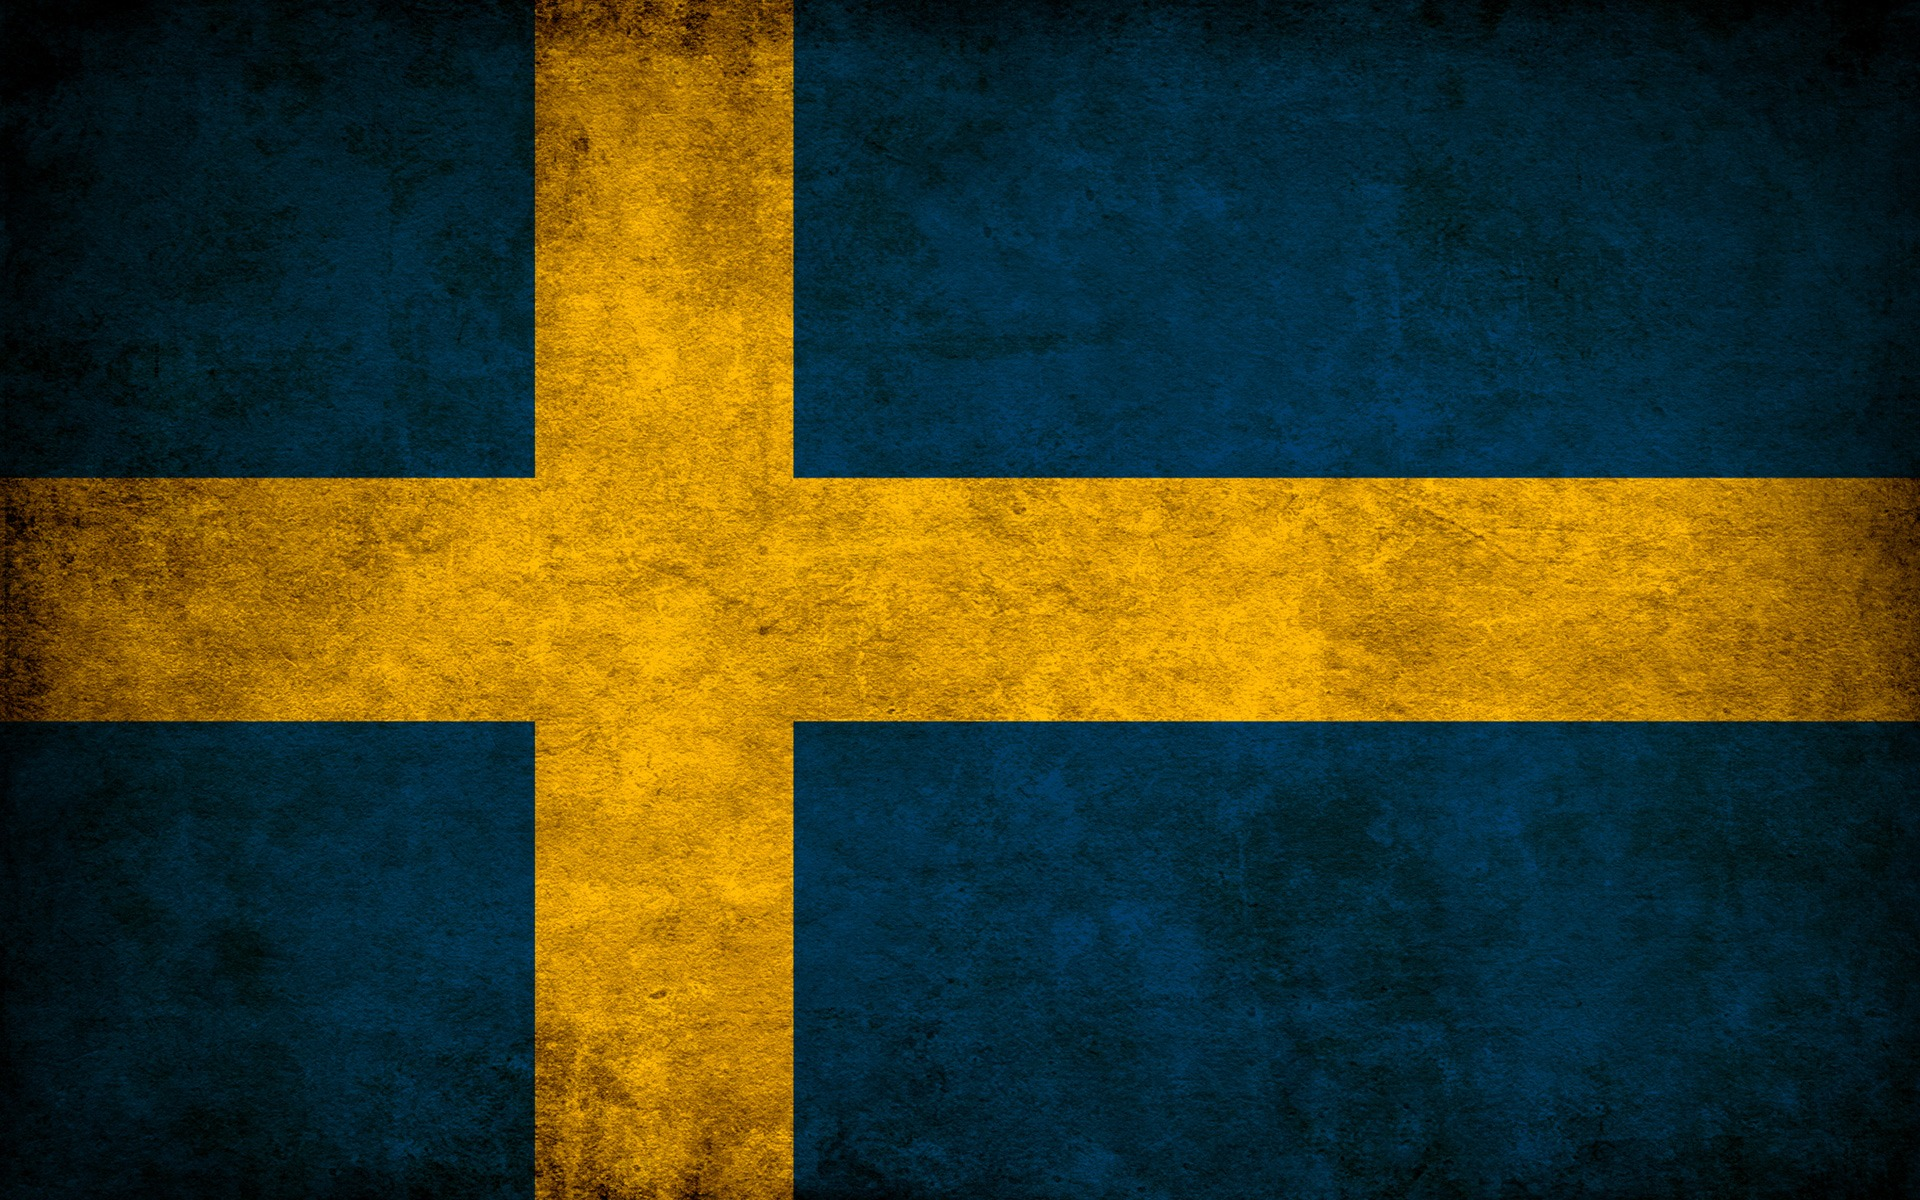 Swedish Wallpaper 1920x1200